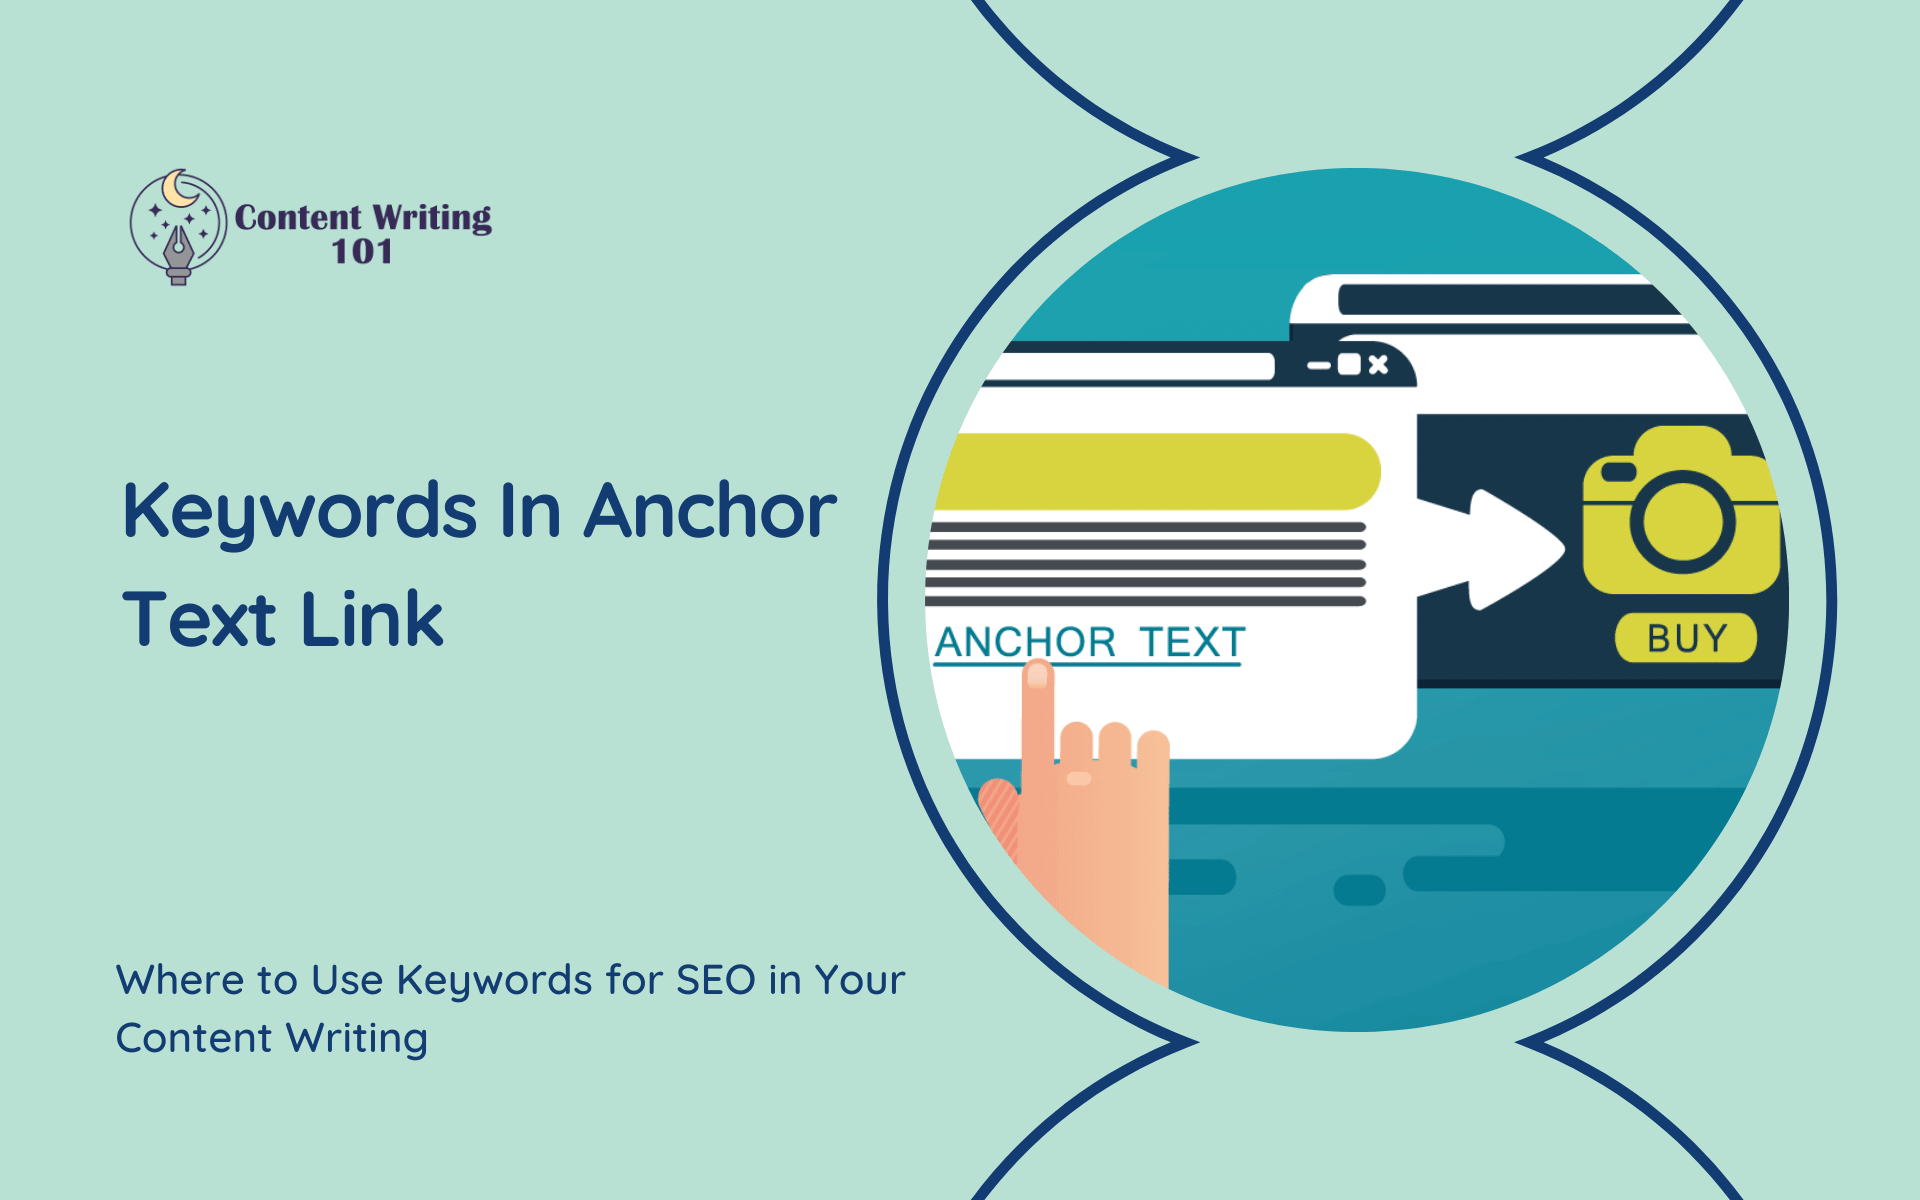 Keywords in Anchor Text Link